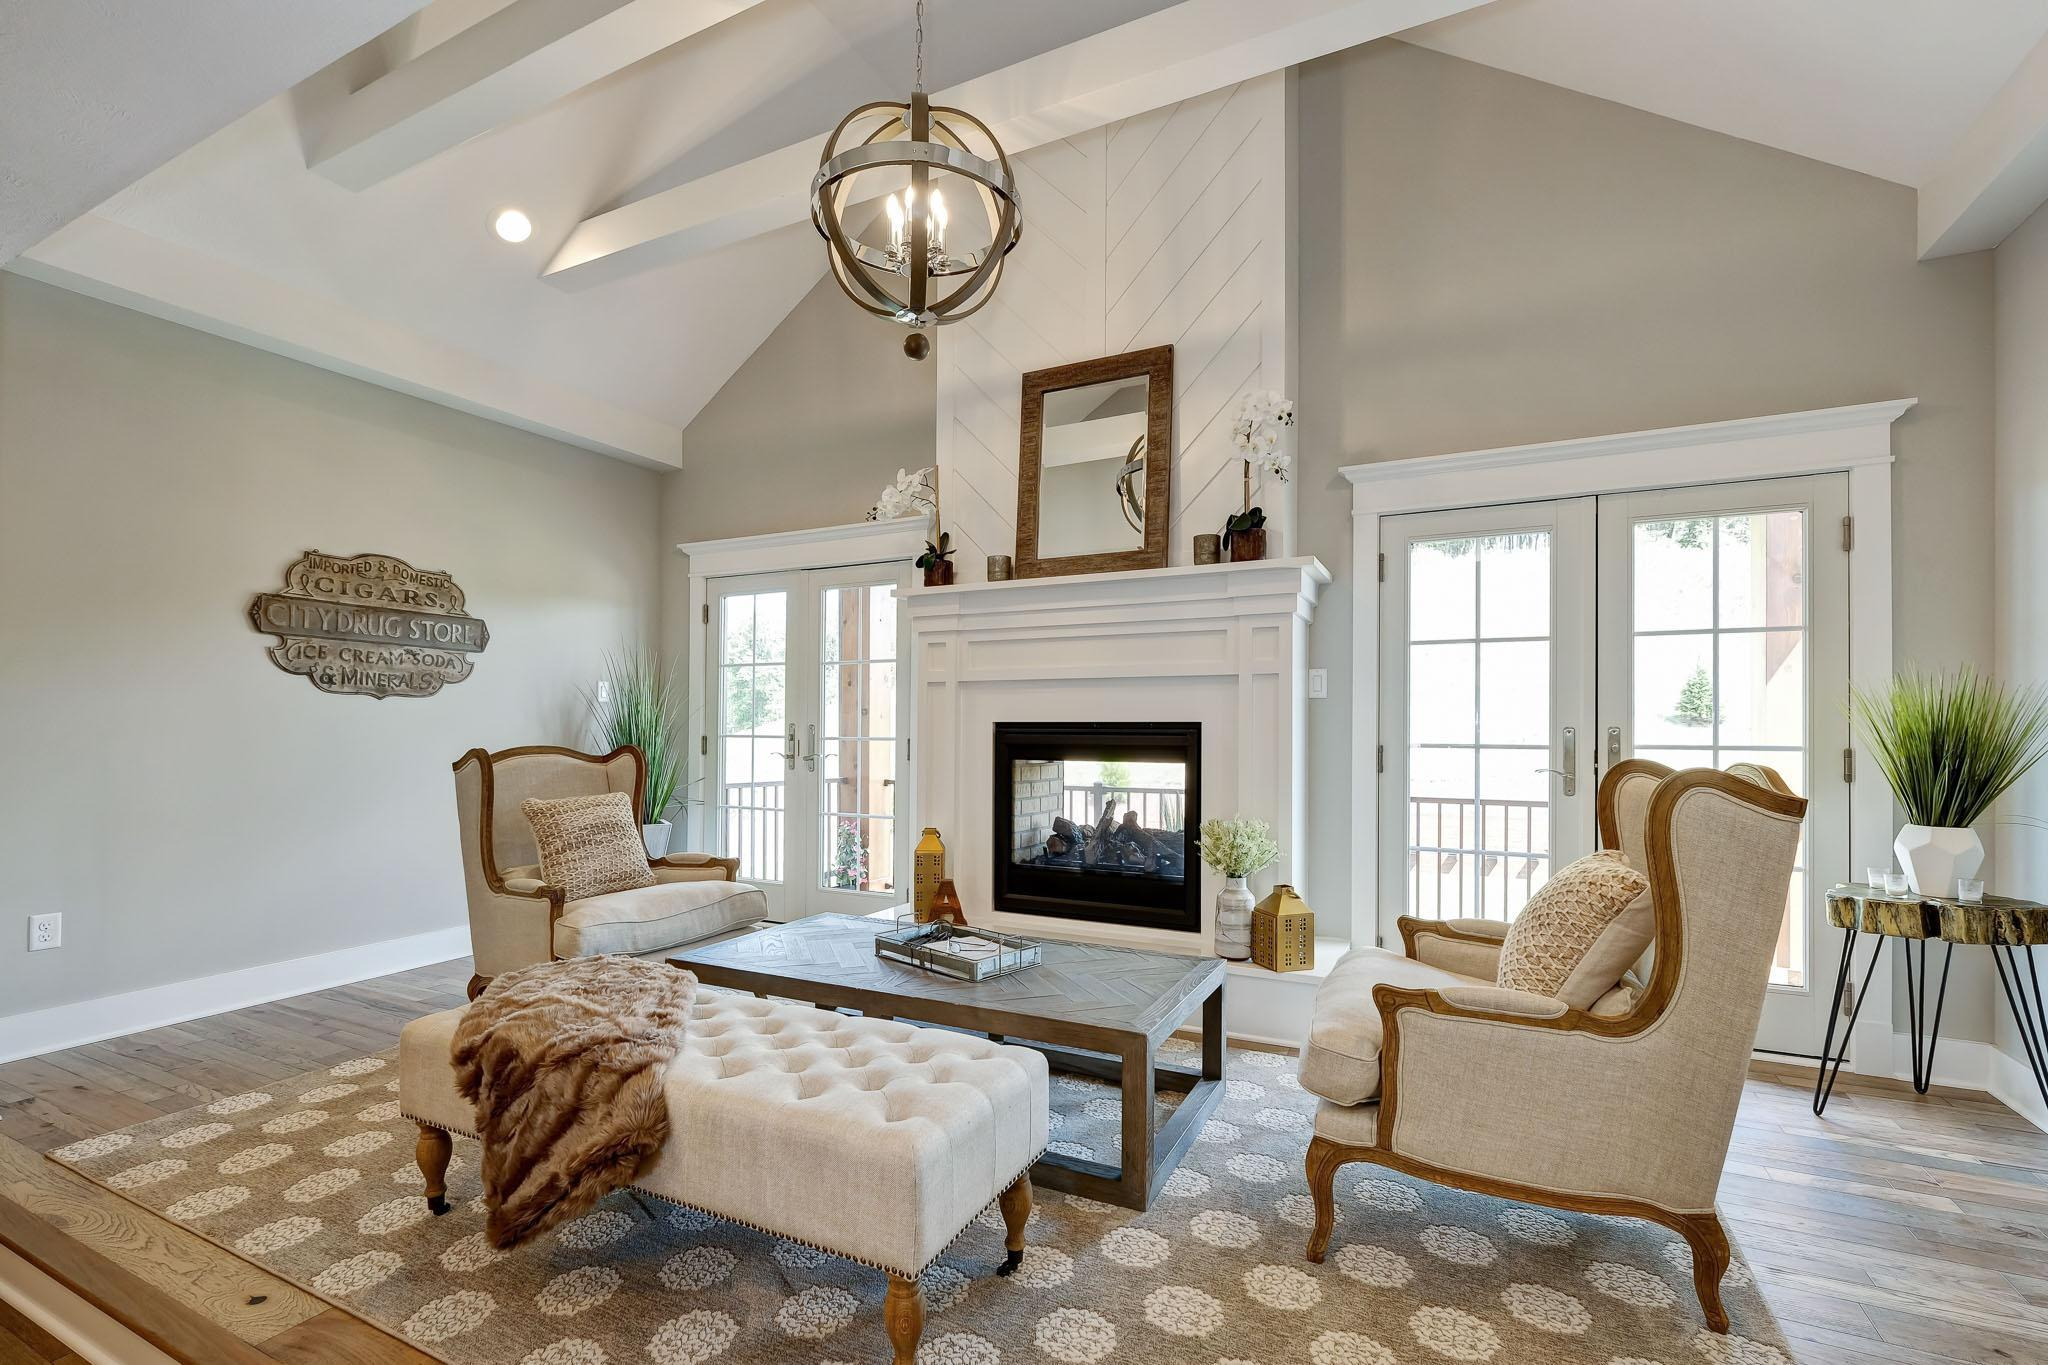 Living Area featured in the Nantucket By Infinity Custom Homes in Pittsburgh, PA